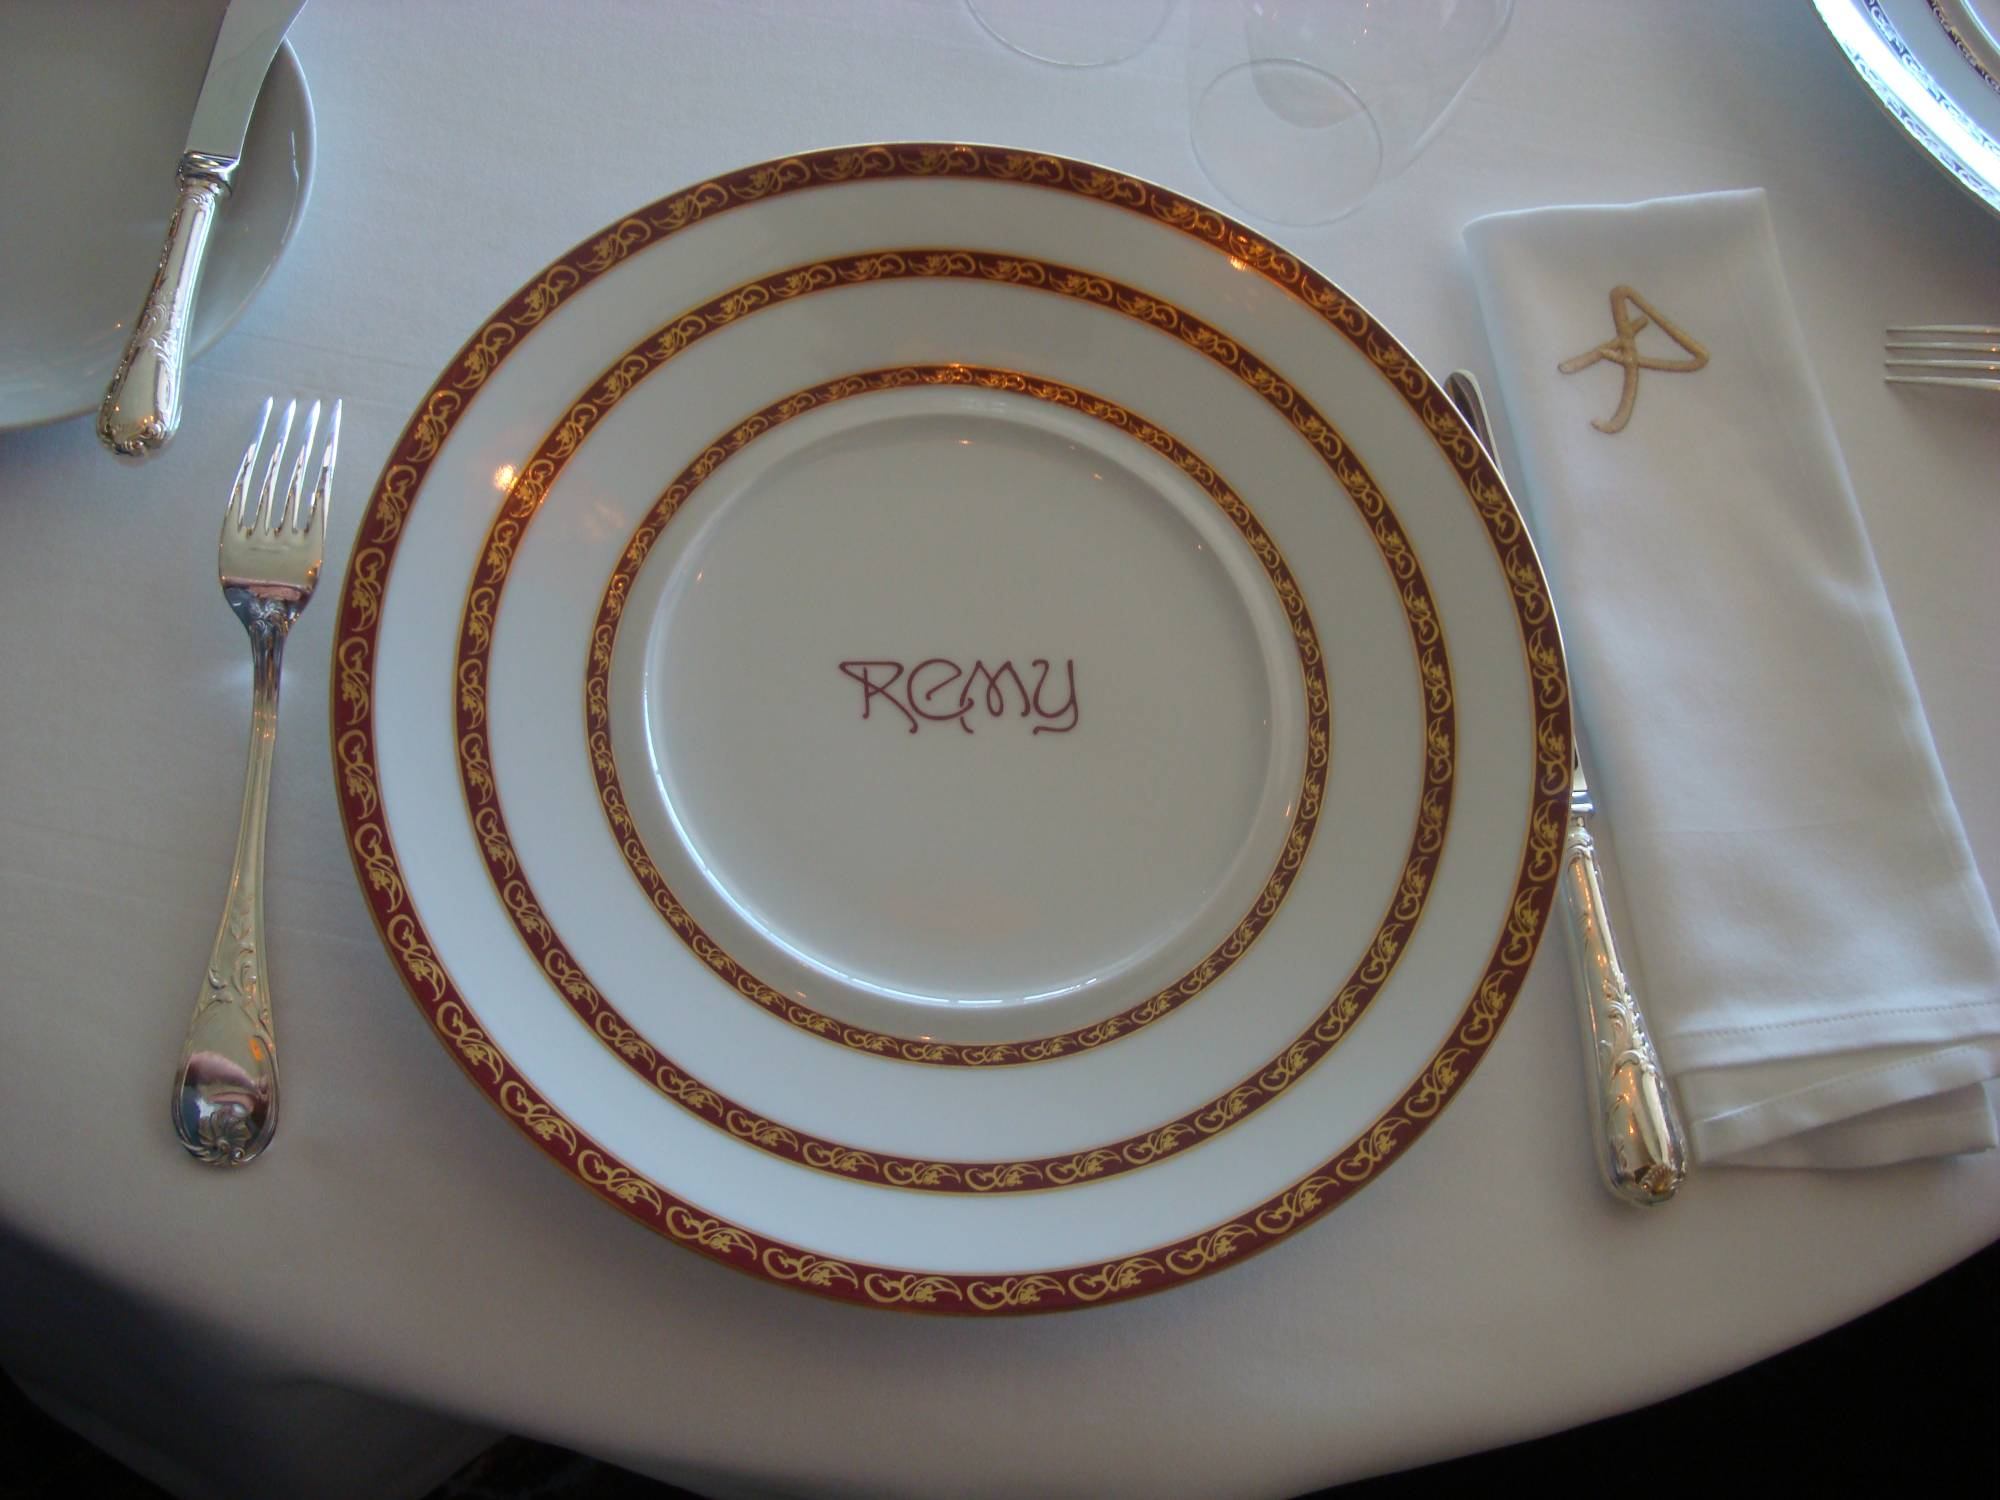 Enjoy a Champagne Brunch at Remy onboard the Disney Fantasy |PassPorter.com